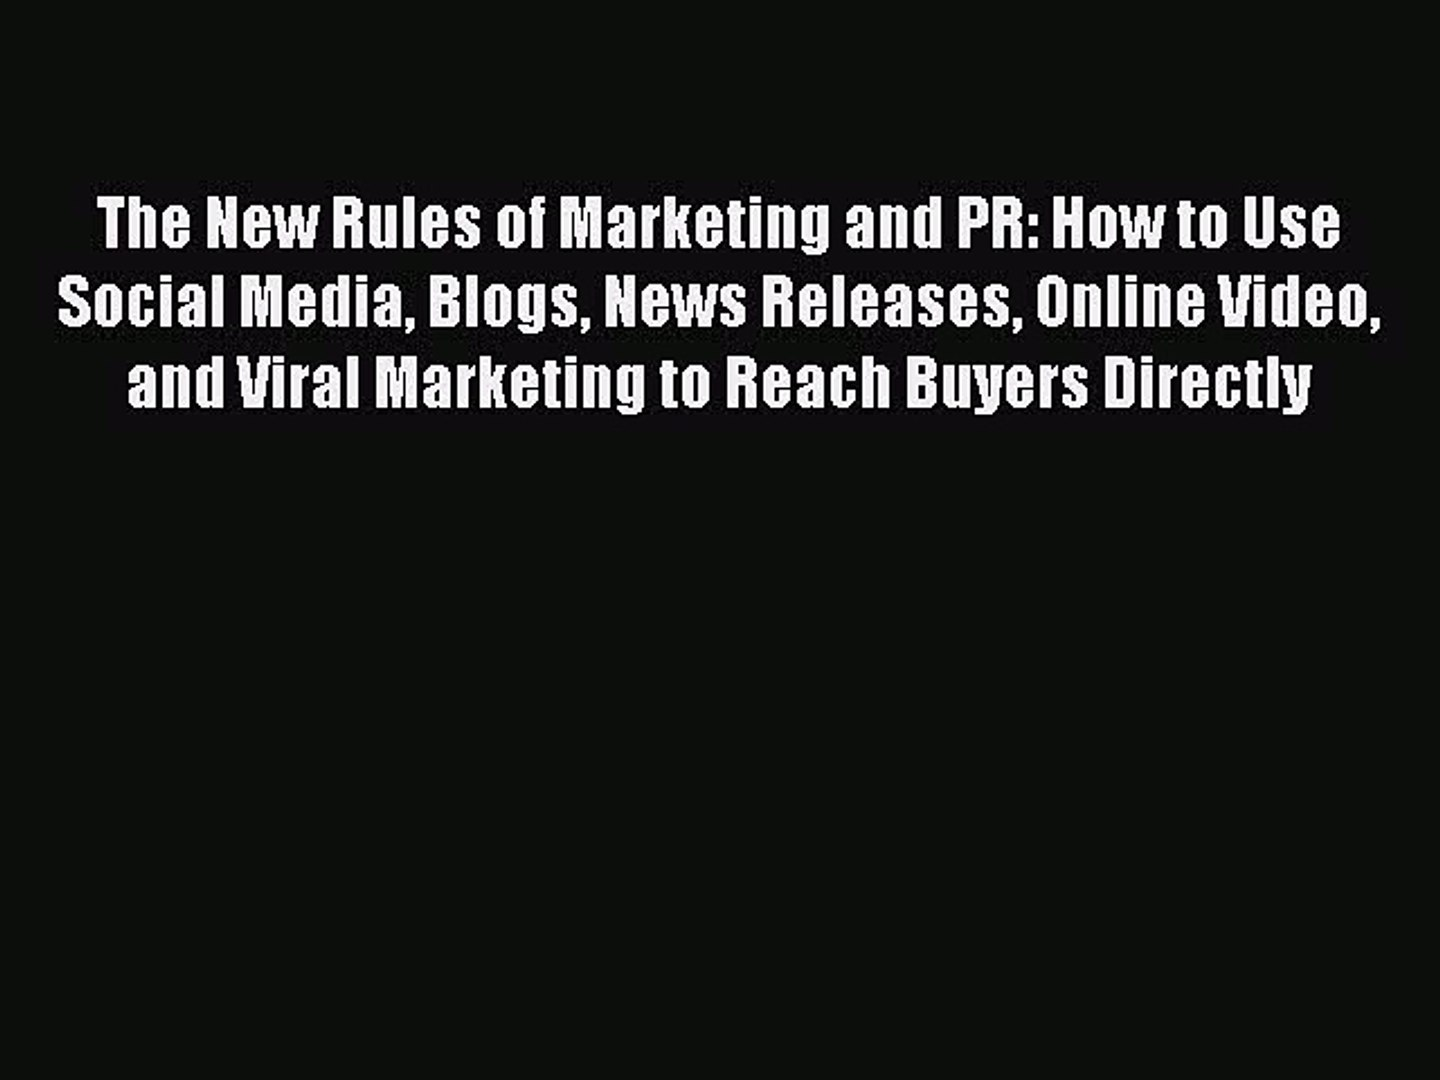 Download The New Rules of Marketing and PR: How to Use Social Media Blogs News Releases Online